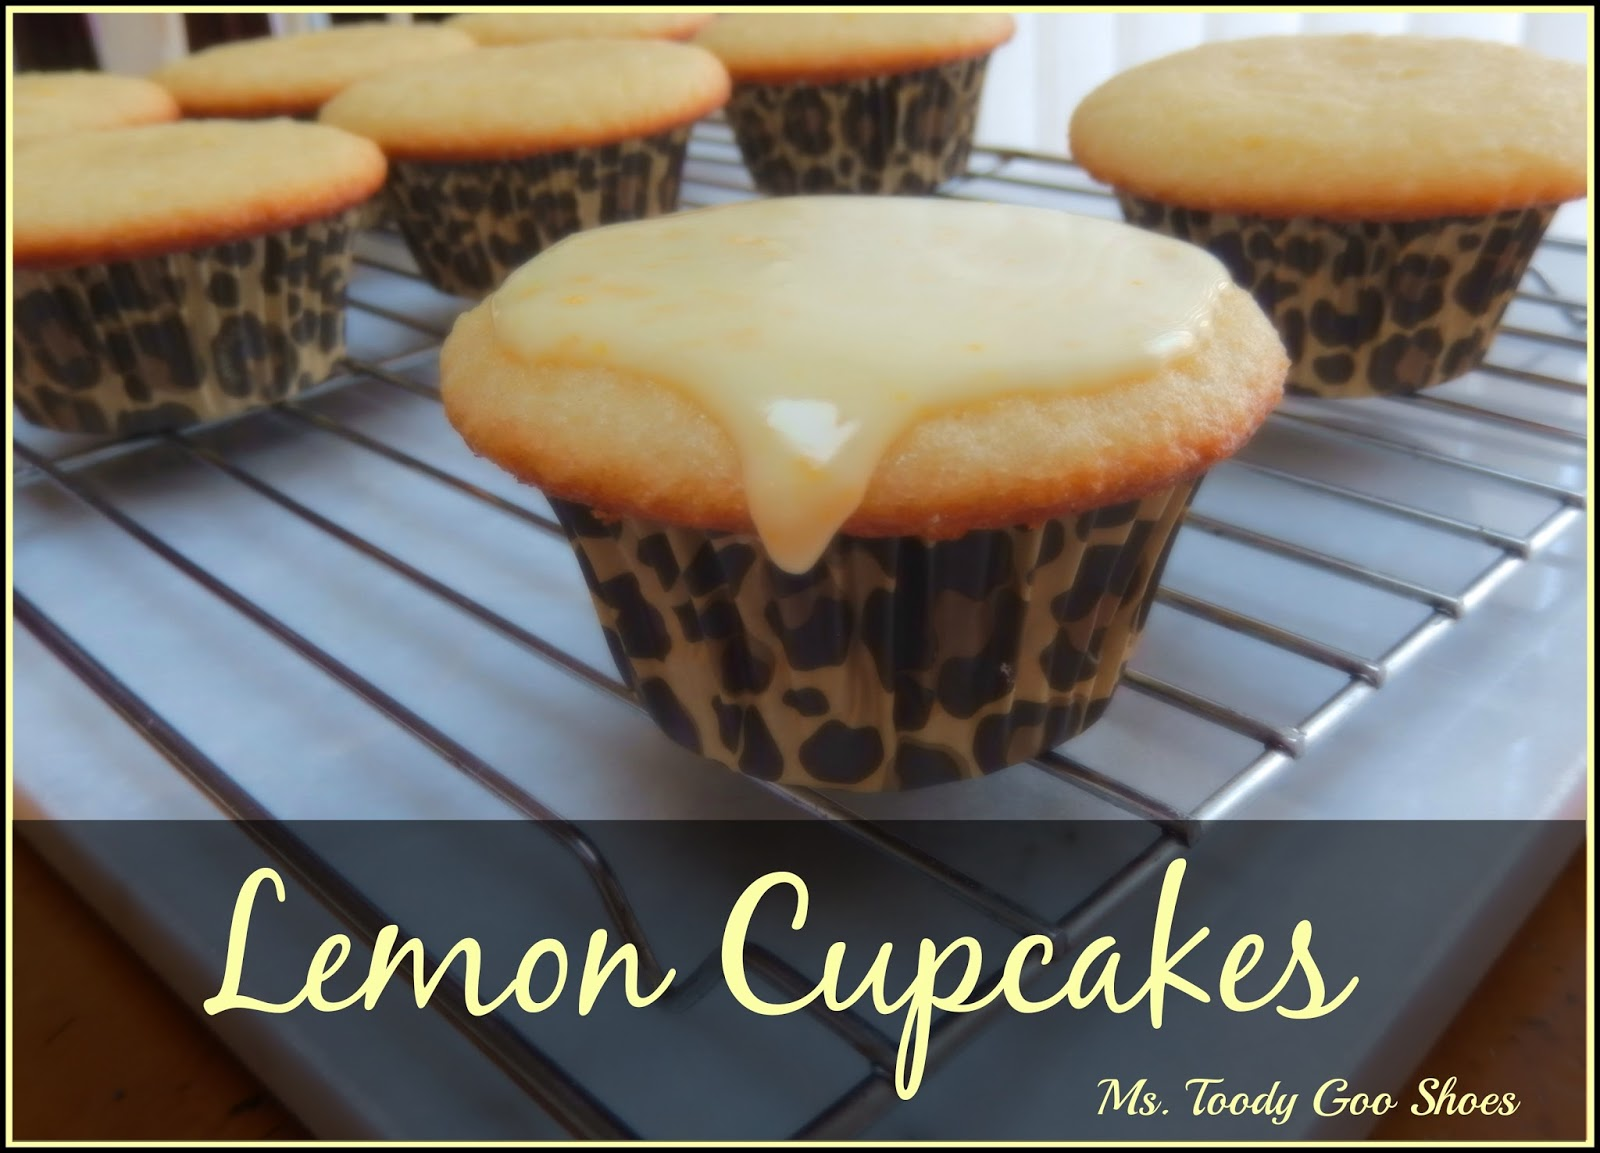 Lemon Cupcakes: Lemony goodness in every bite from #FlatBellyDiet Cookbook  ---Ms. Toody Goo Shoes.